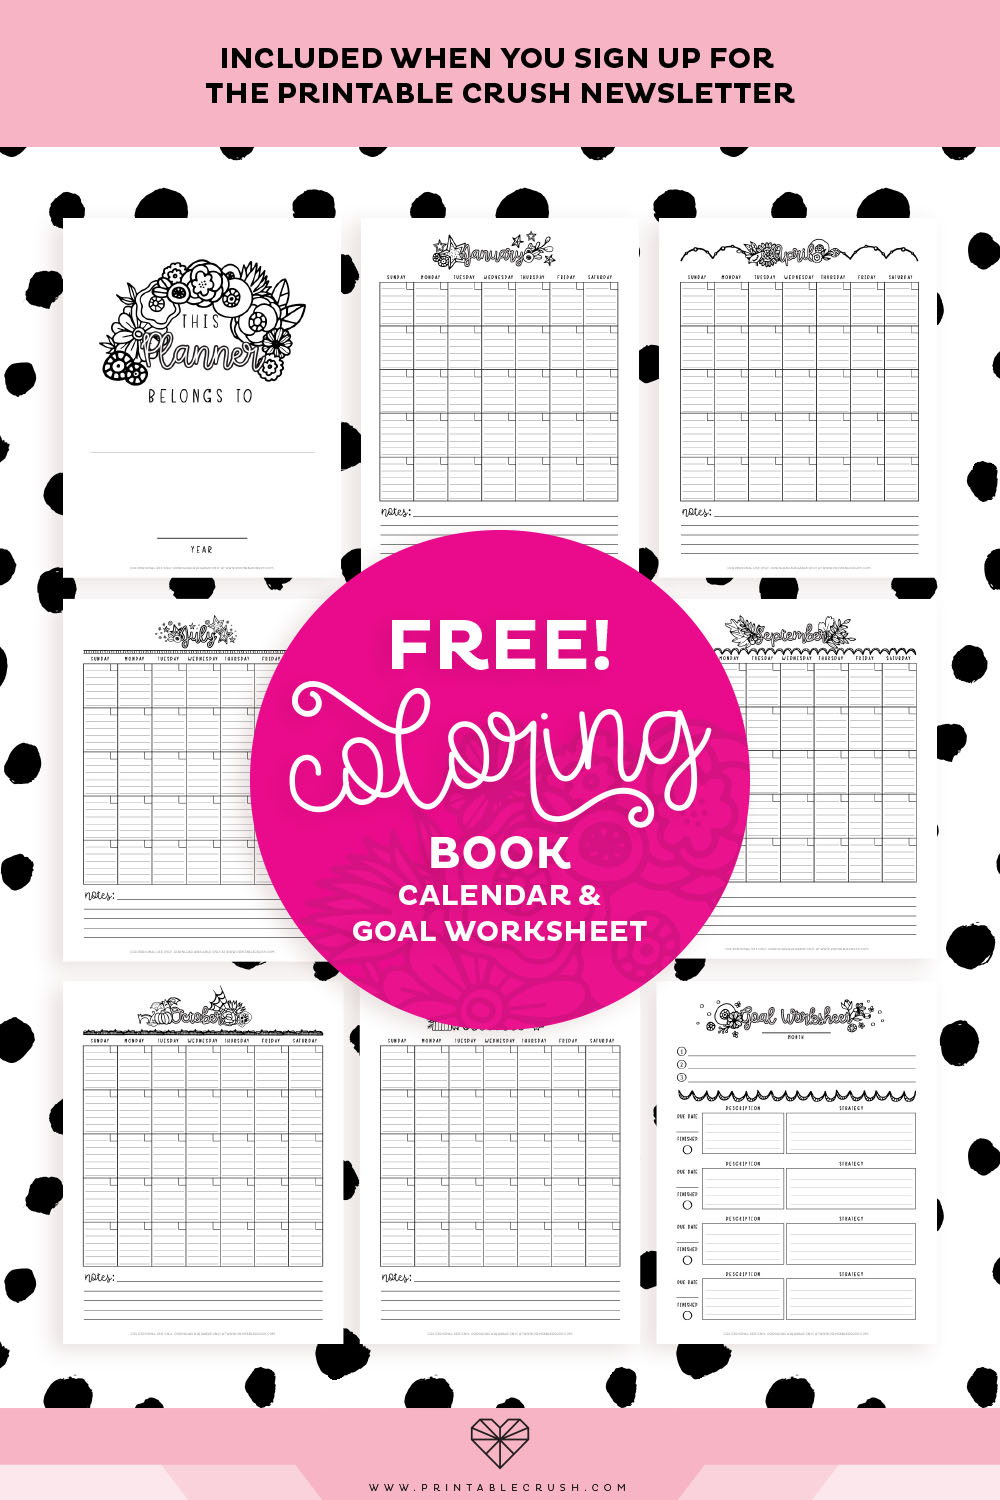 Get this Fun Coloring Book Planner when you sign up for the Printable Crush email list!